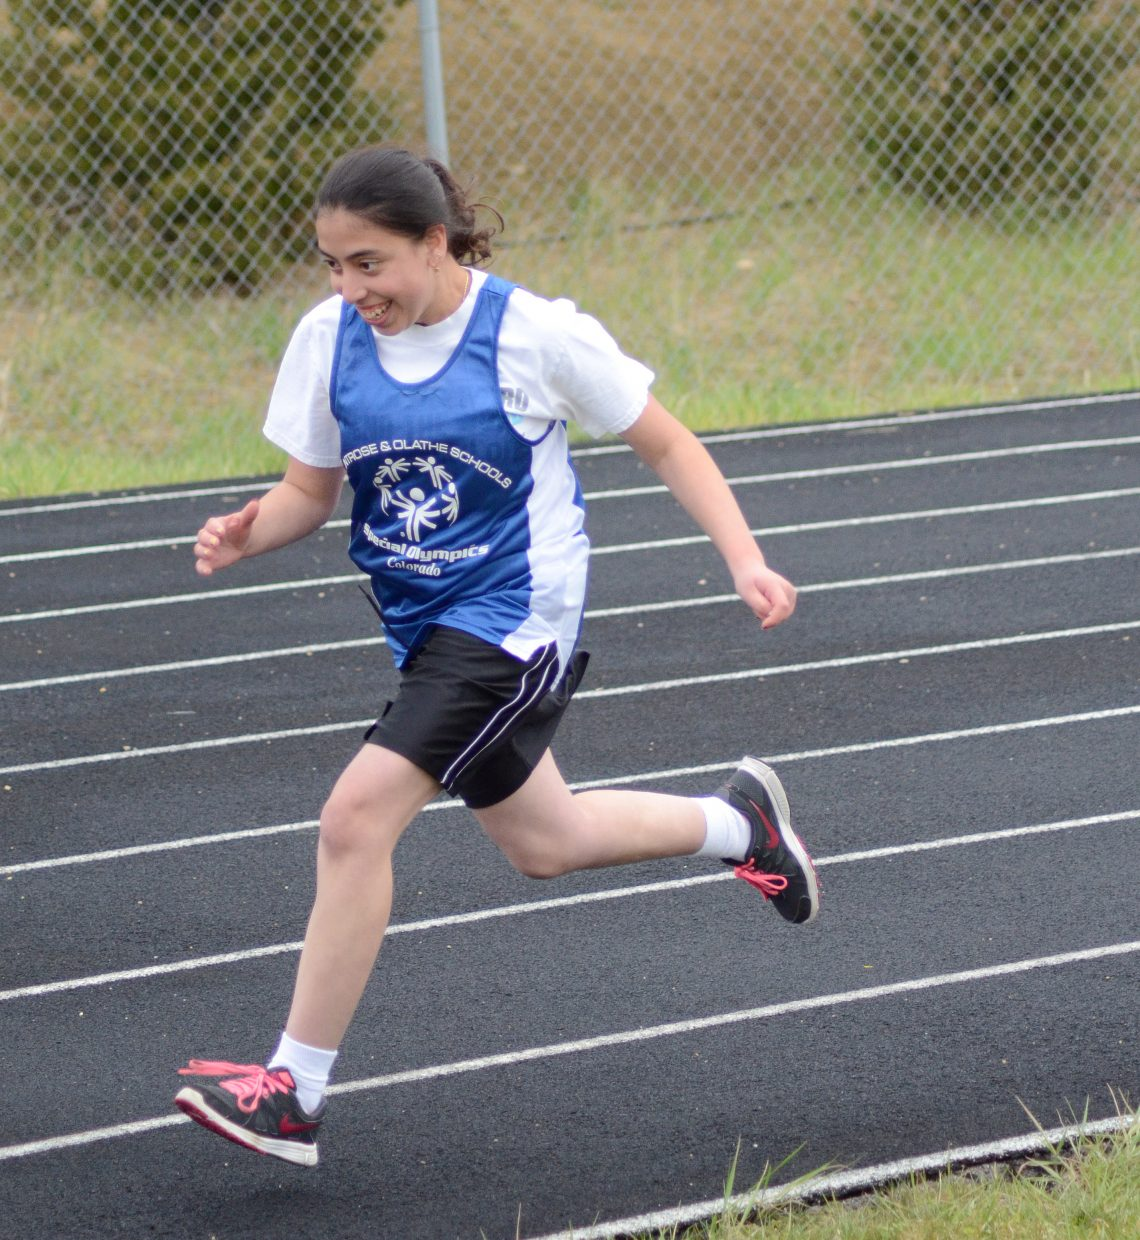 Carolina Jaramillo sprints out at the start of her 400 meter run, where she won a gold medal in Craig Saturday.